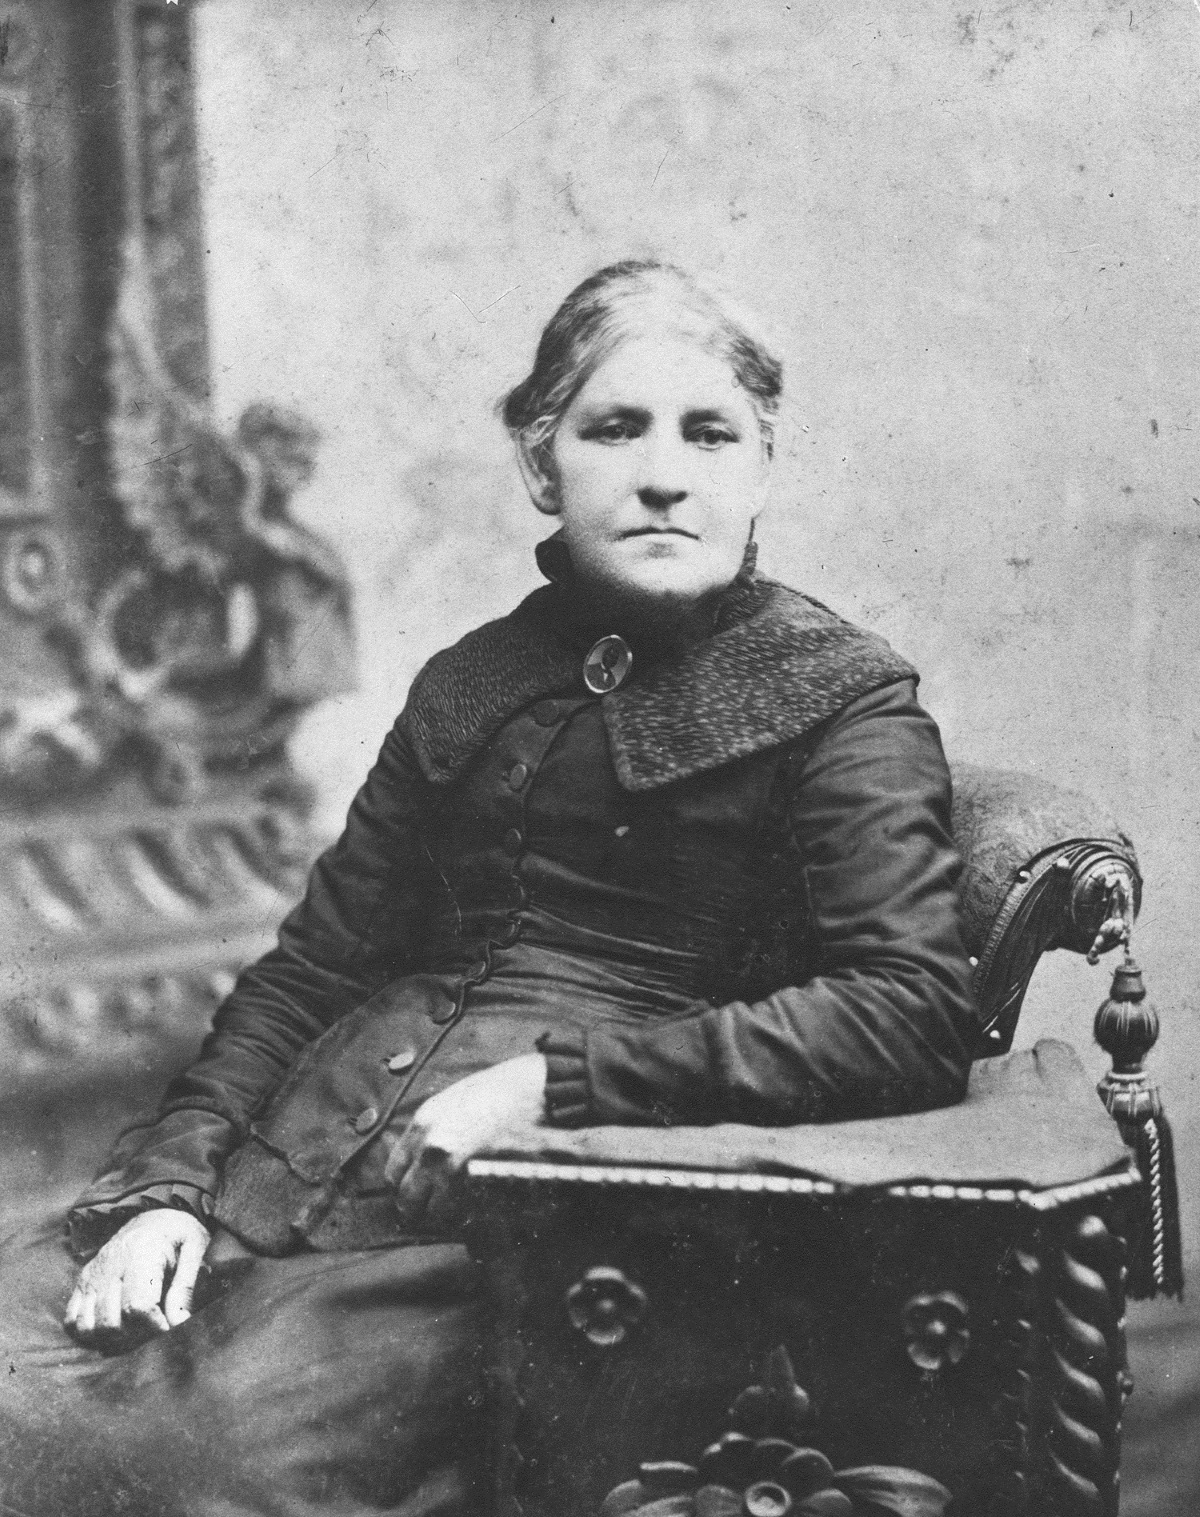 Photograph of Lucy Goode Brooks, courtesy of the Friends' Association for Children